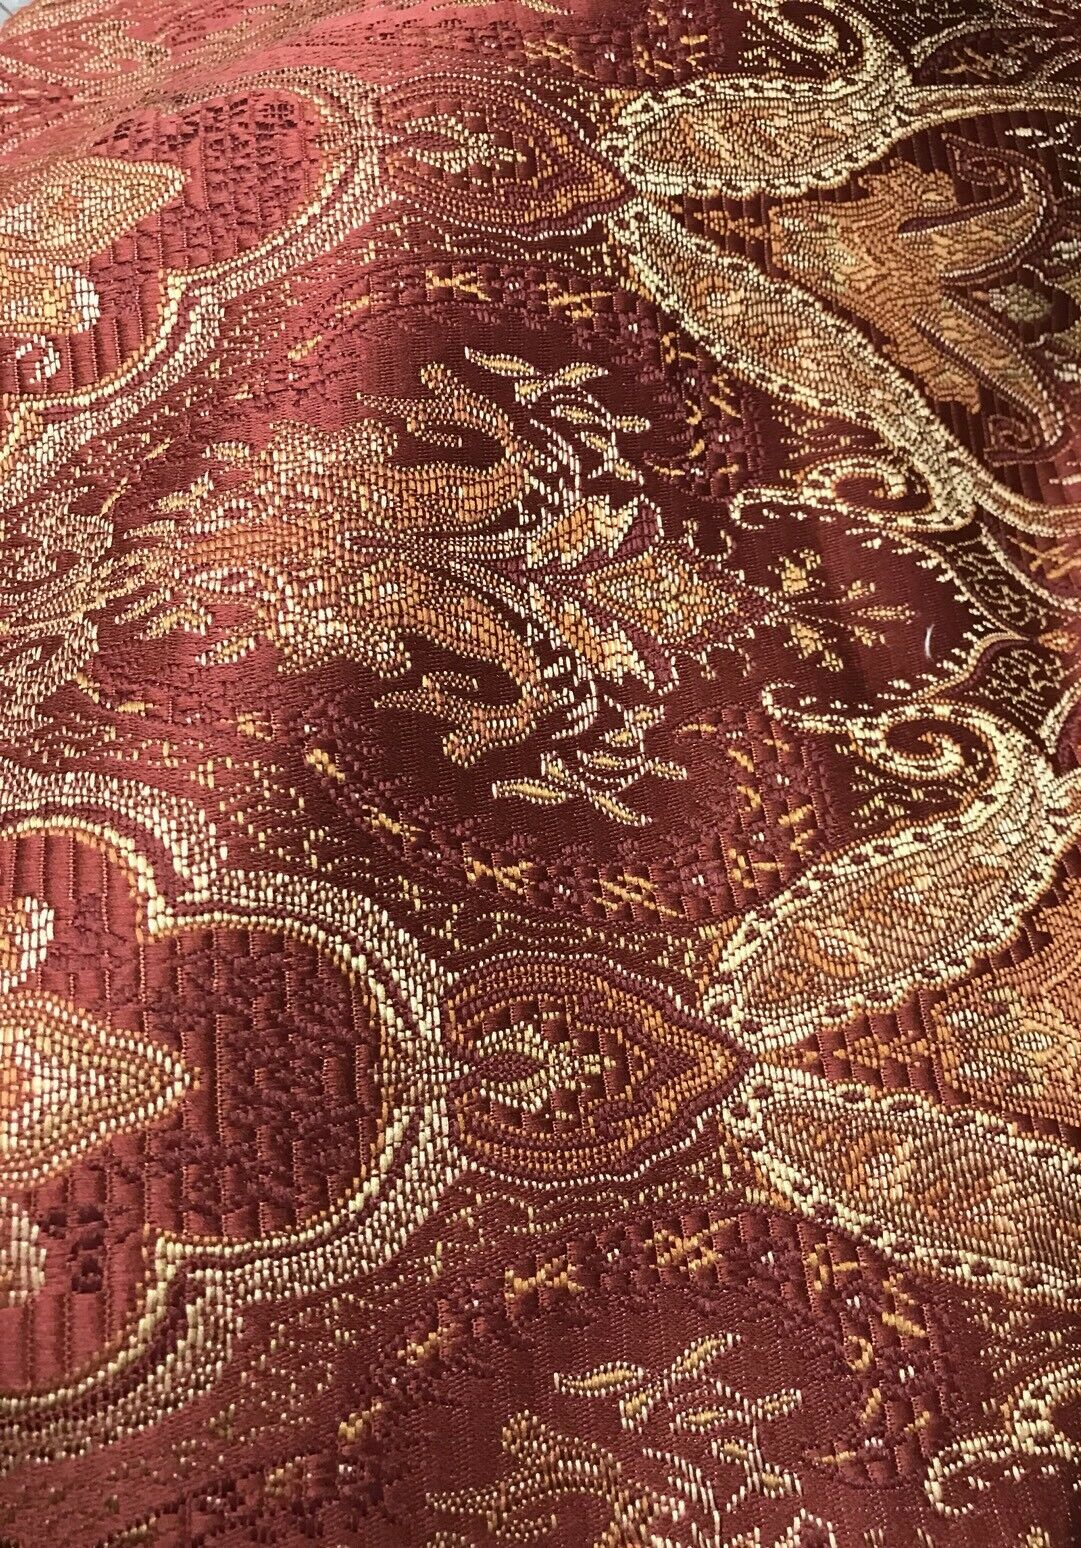 SALE! Designer Brocade Bohemian Upholstery Fabric - Wine Red- By The Yard